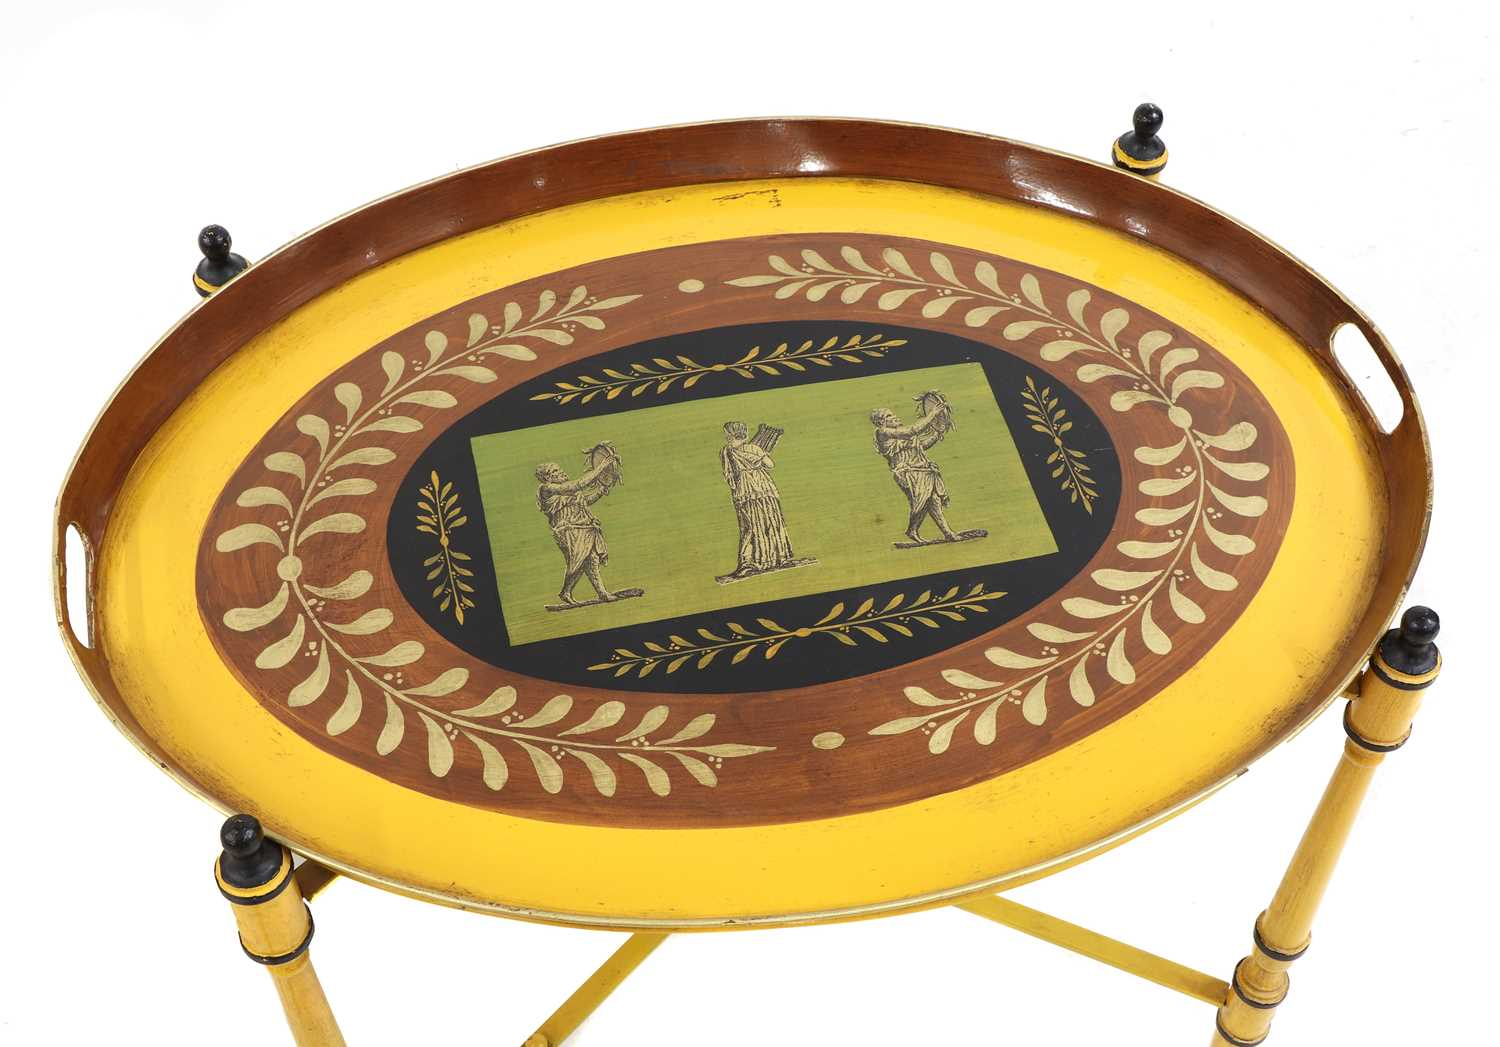 A pair of Regency-style yellow-painted toleware side tables, - Image 2 of 4